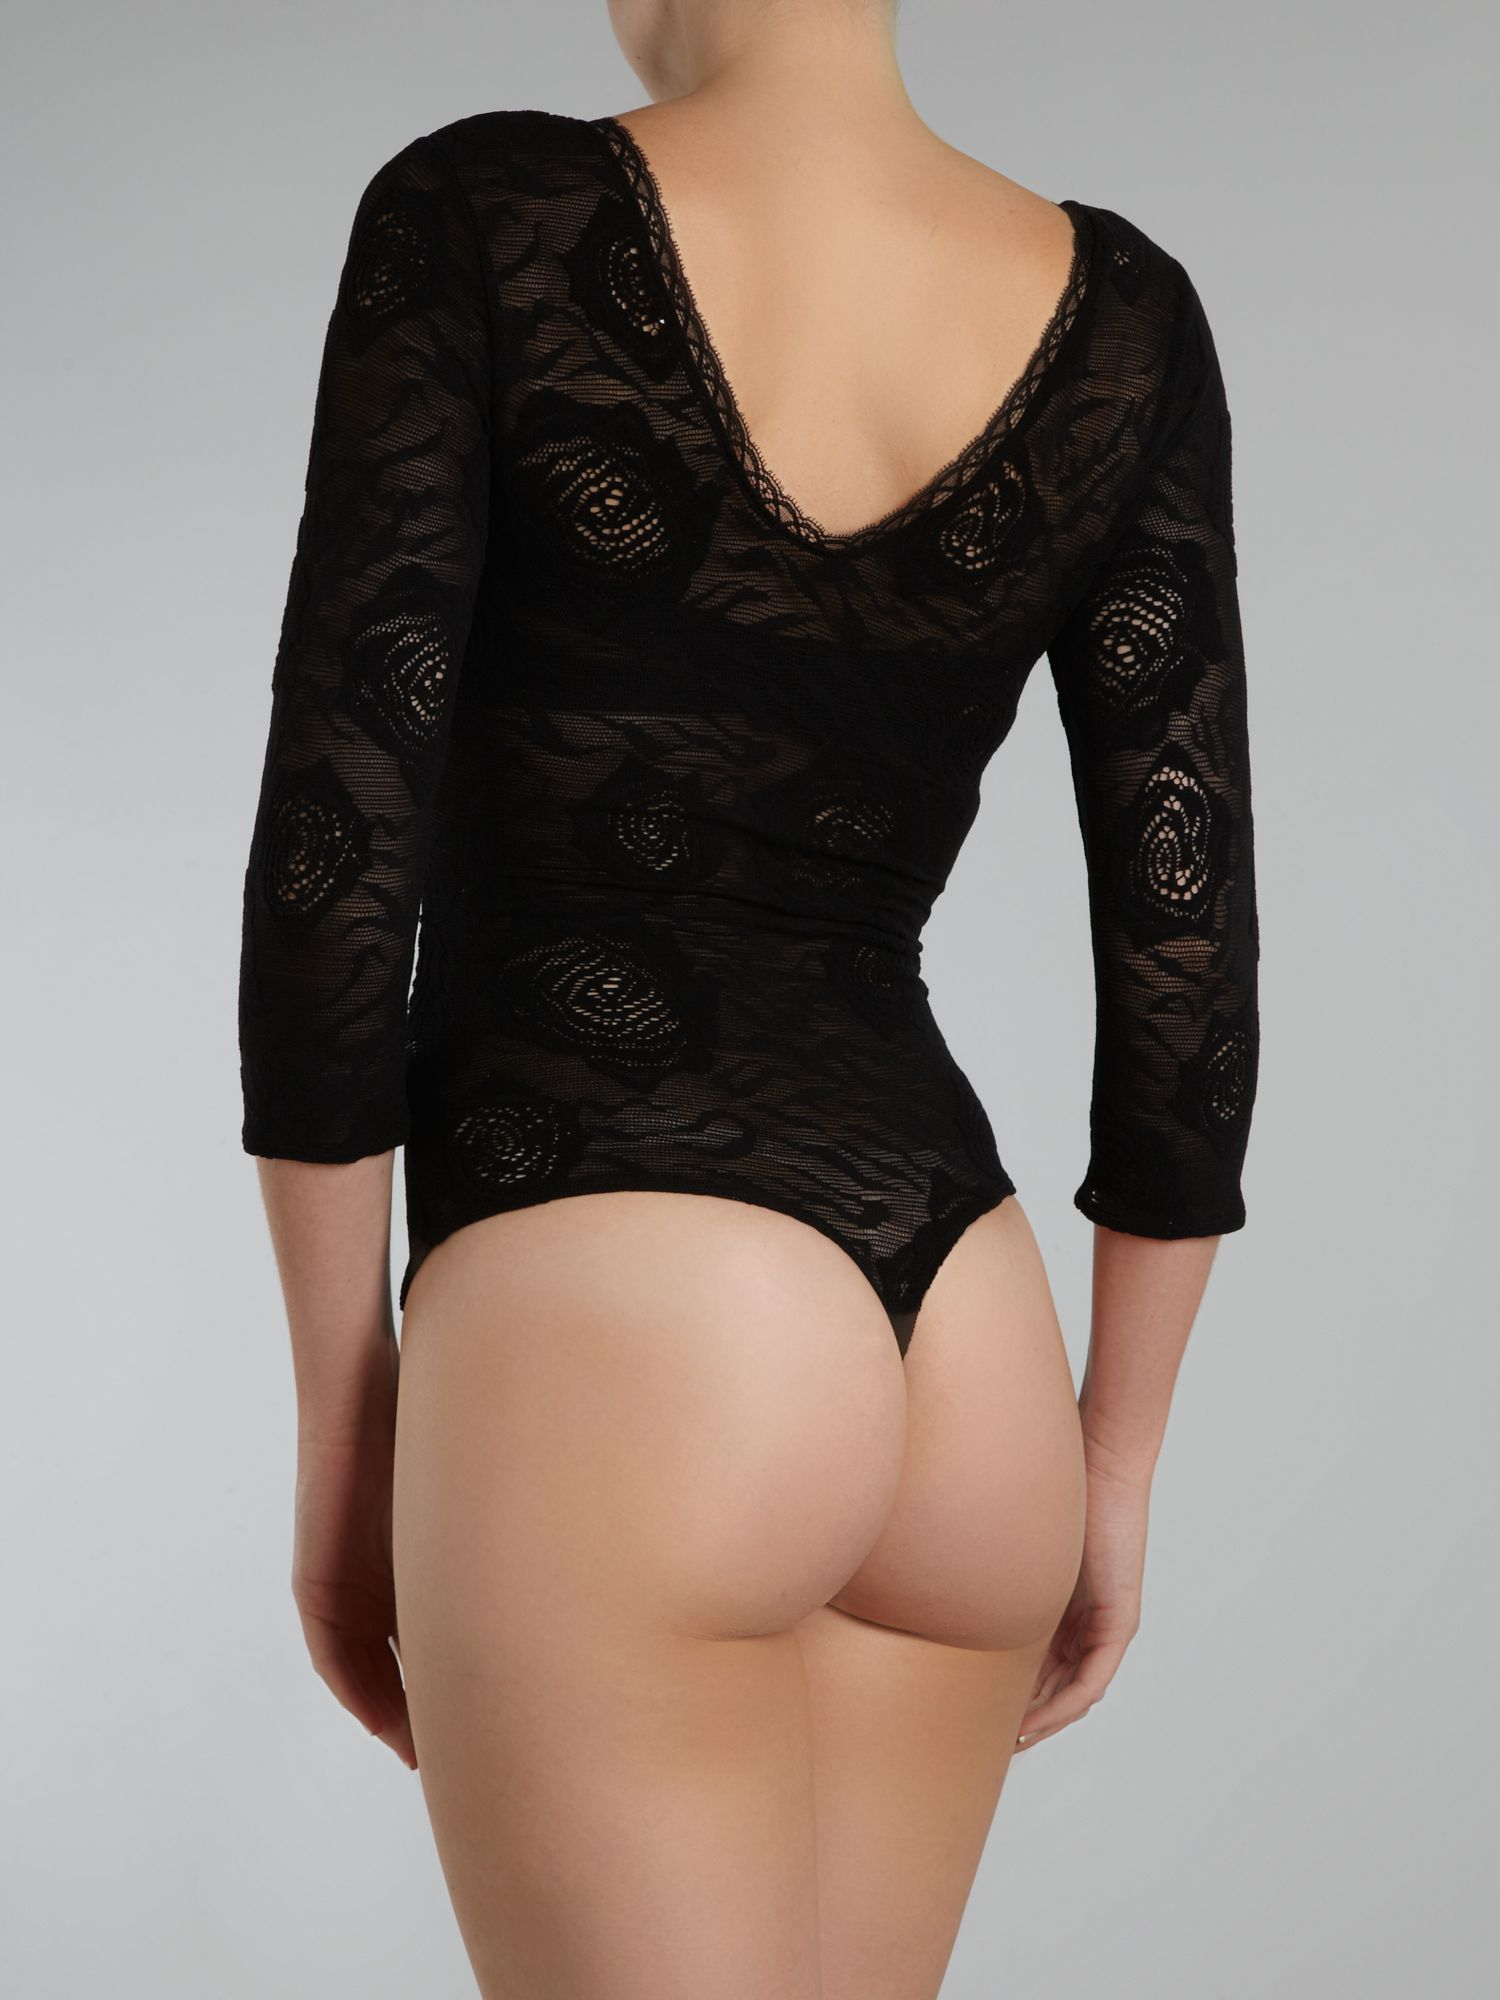 Anirose string body